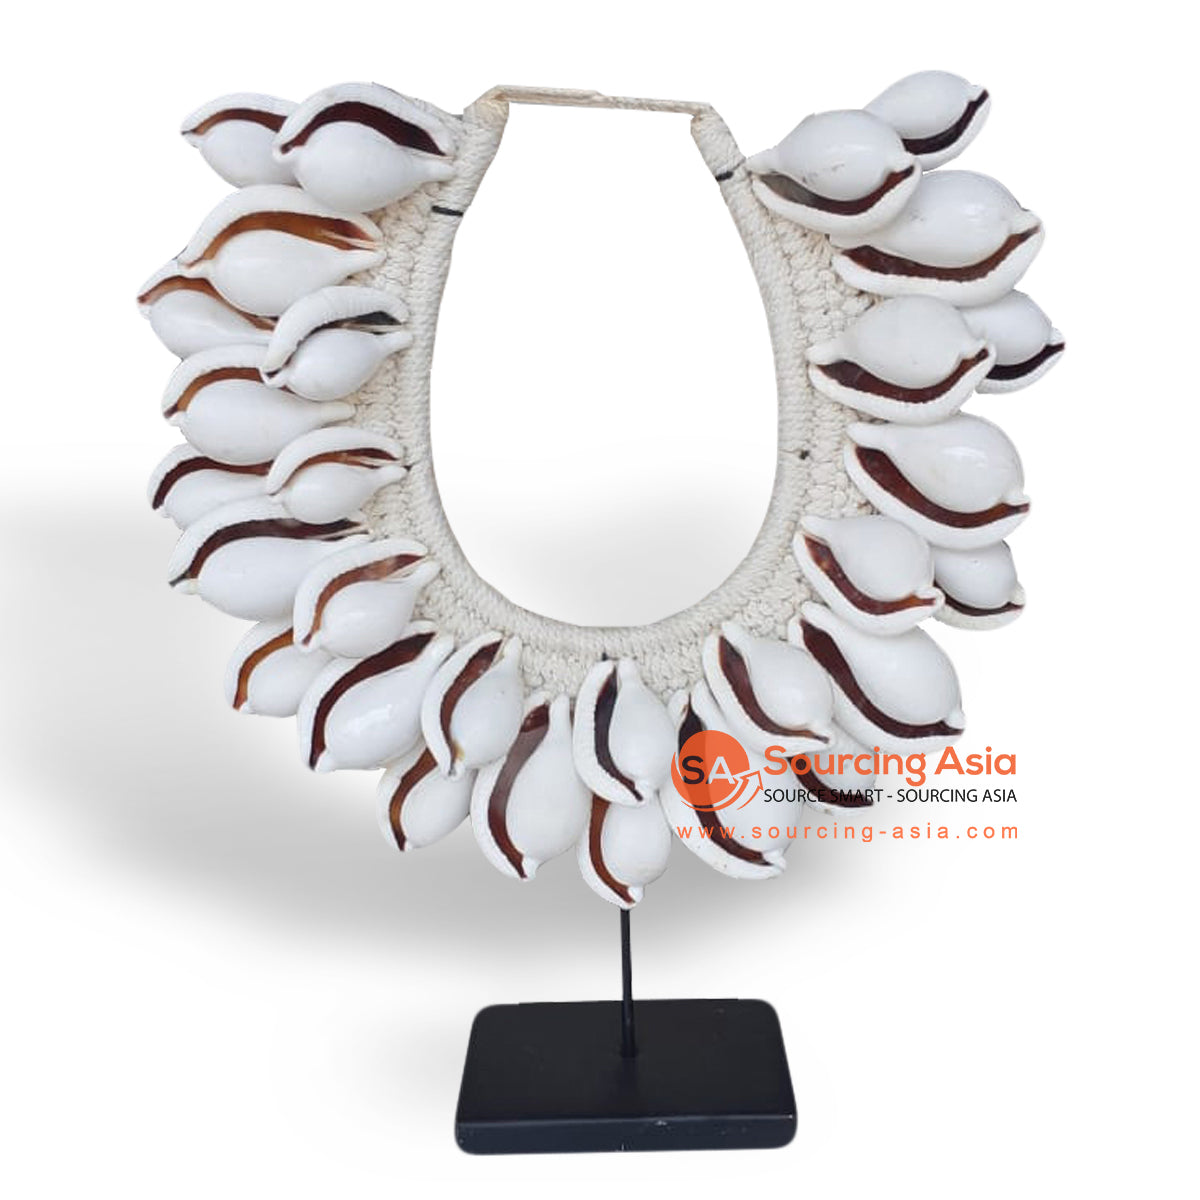 EXA119 PAPUA SHELL NECKLACE ON STAND